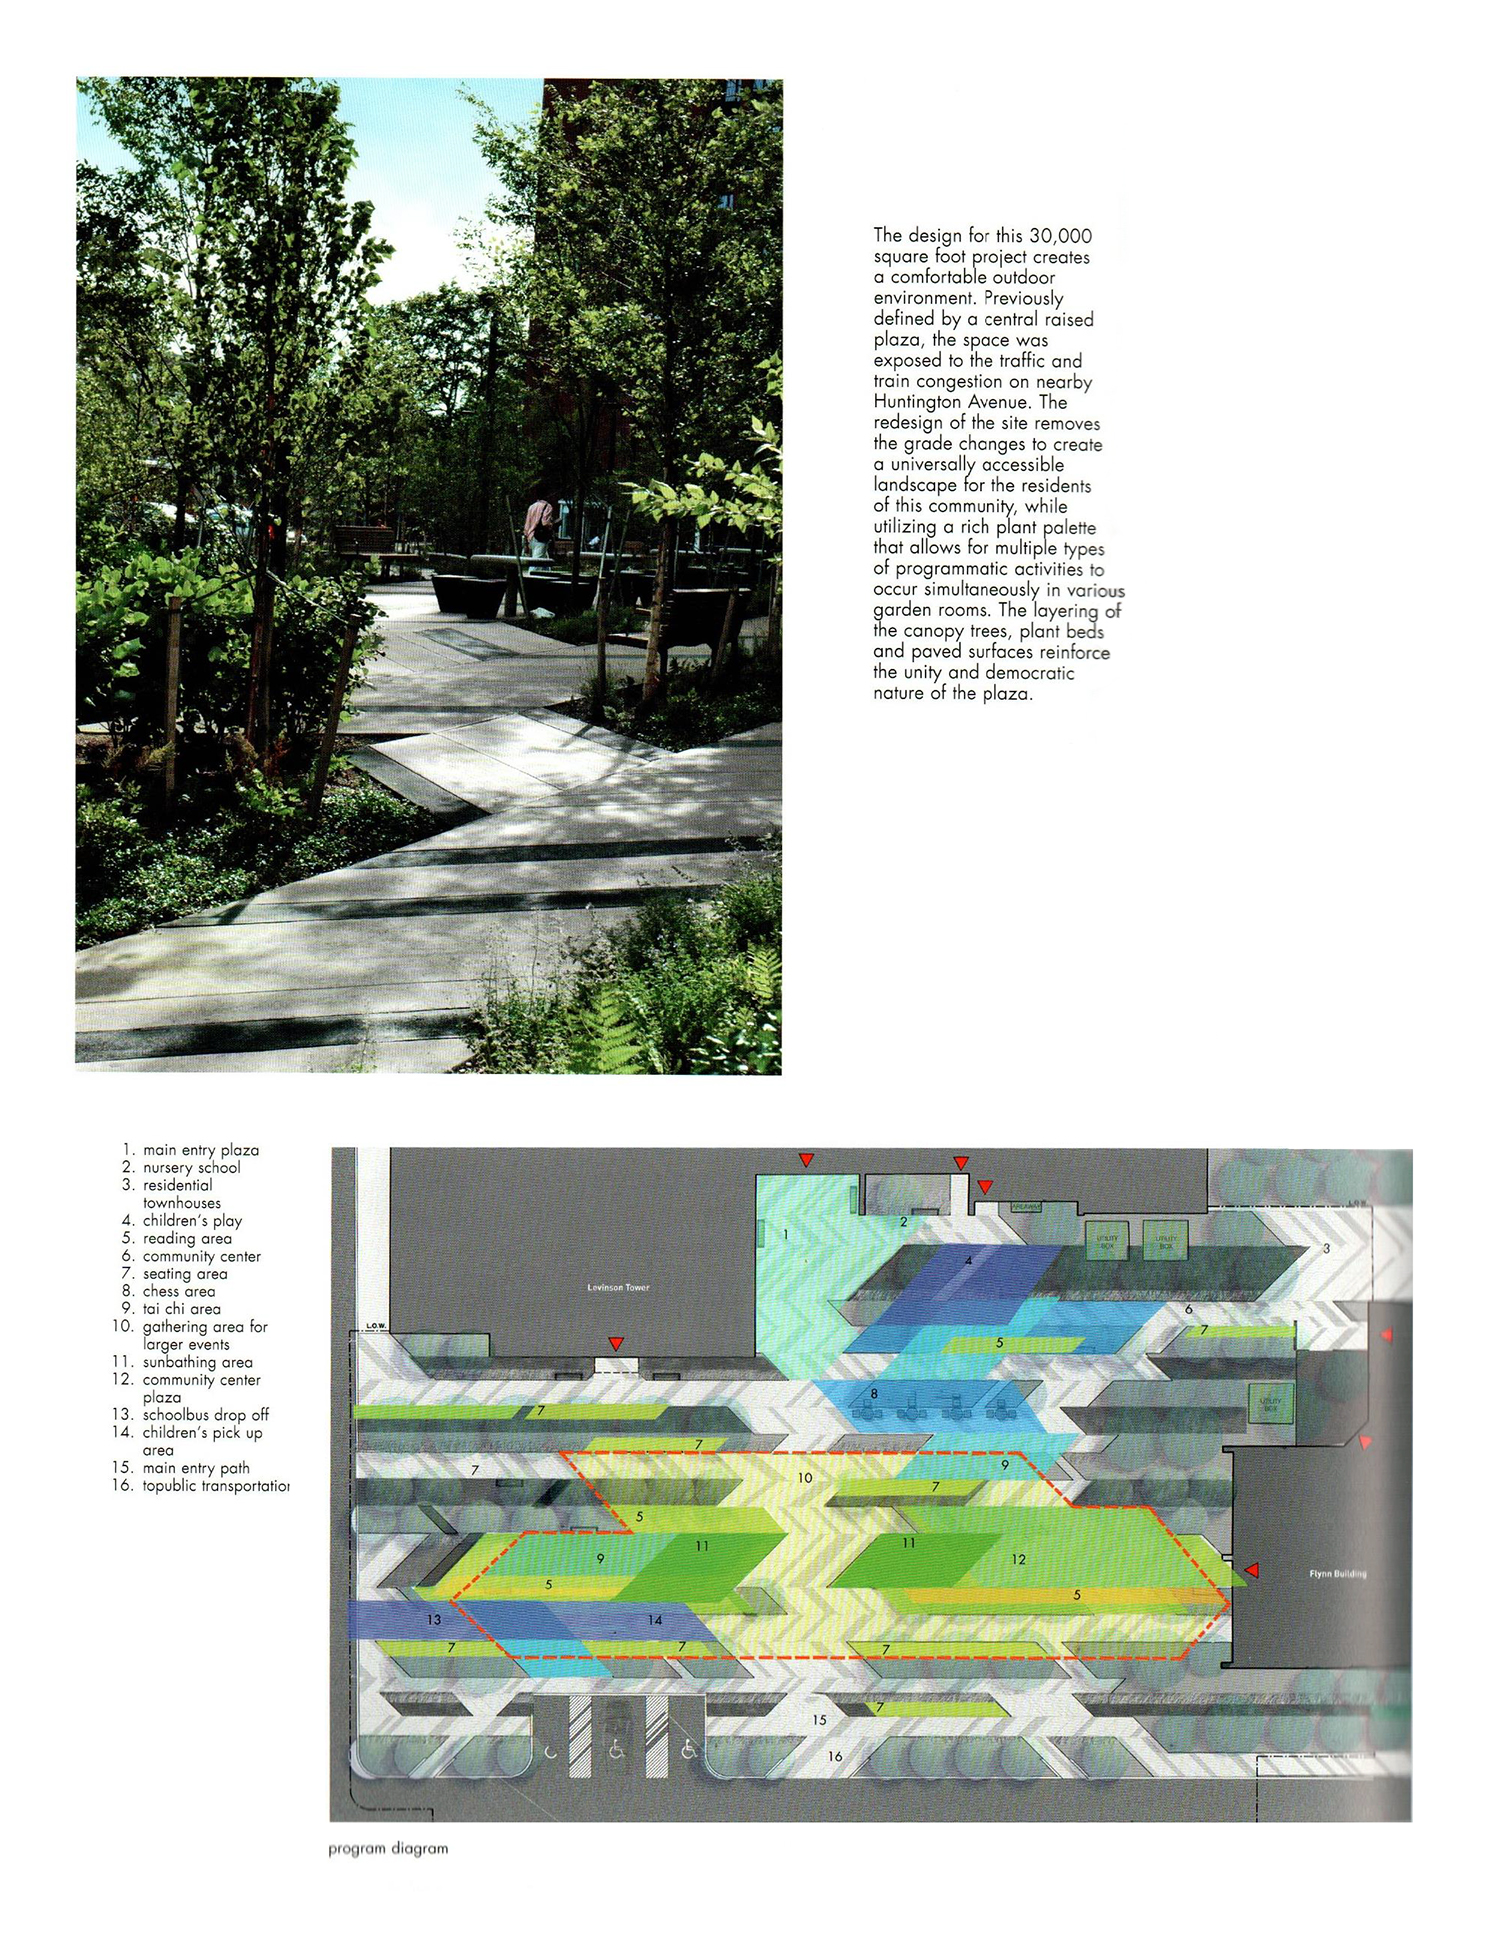 mikyoung kim design levinson plaza in mission park featured in